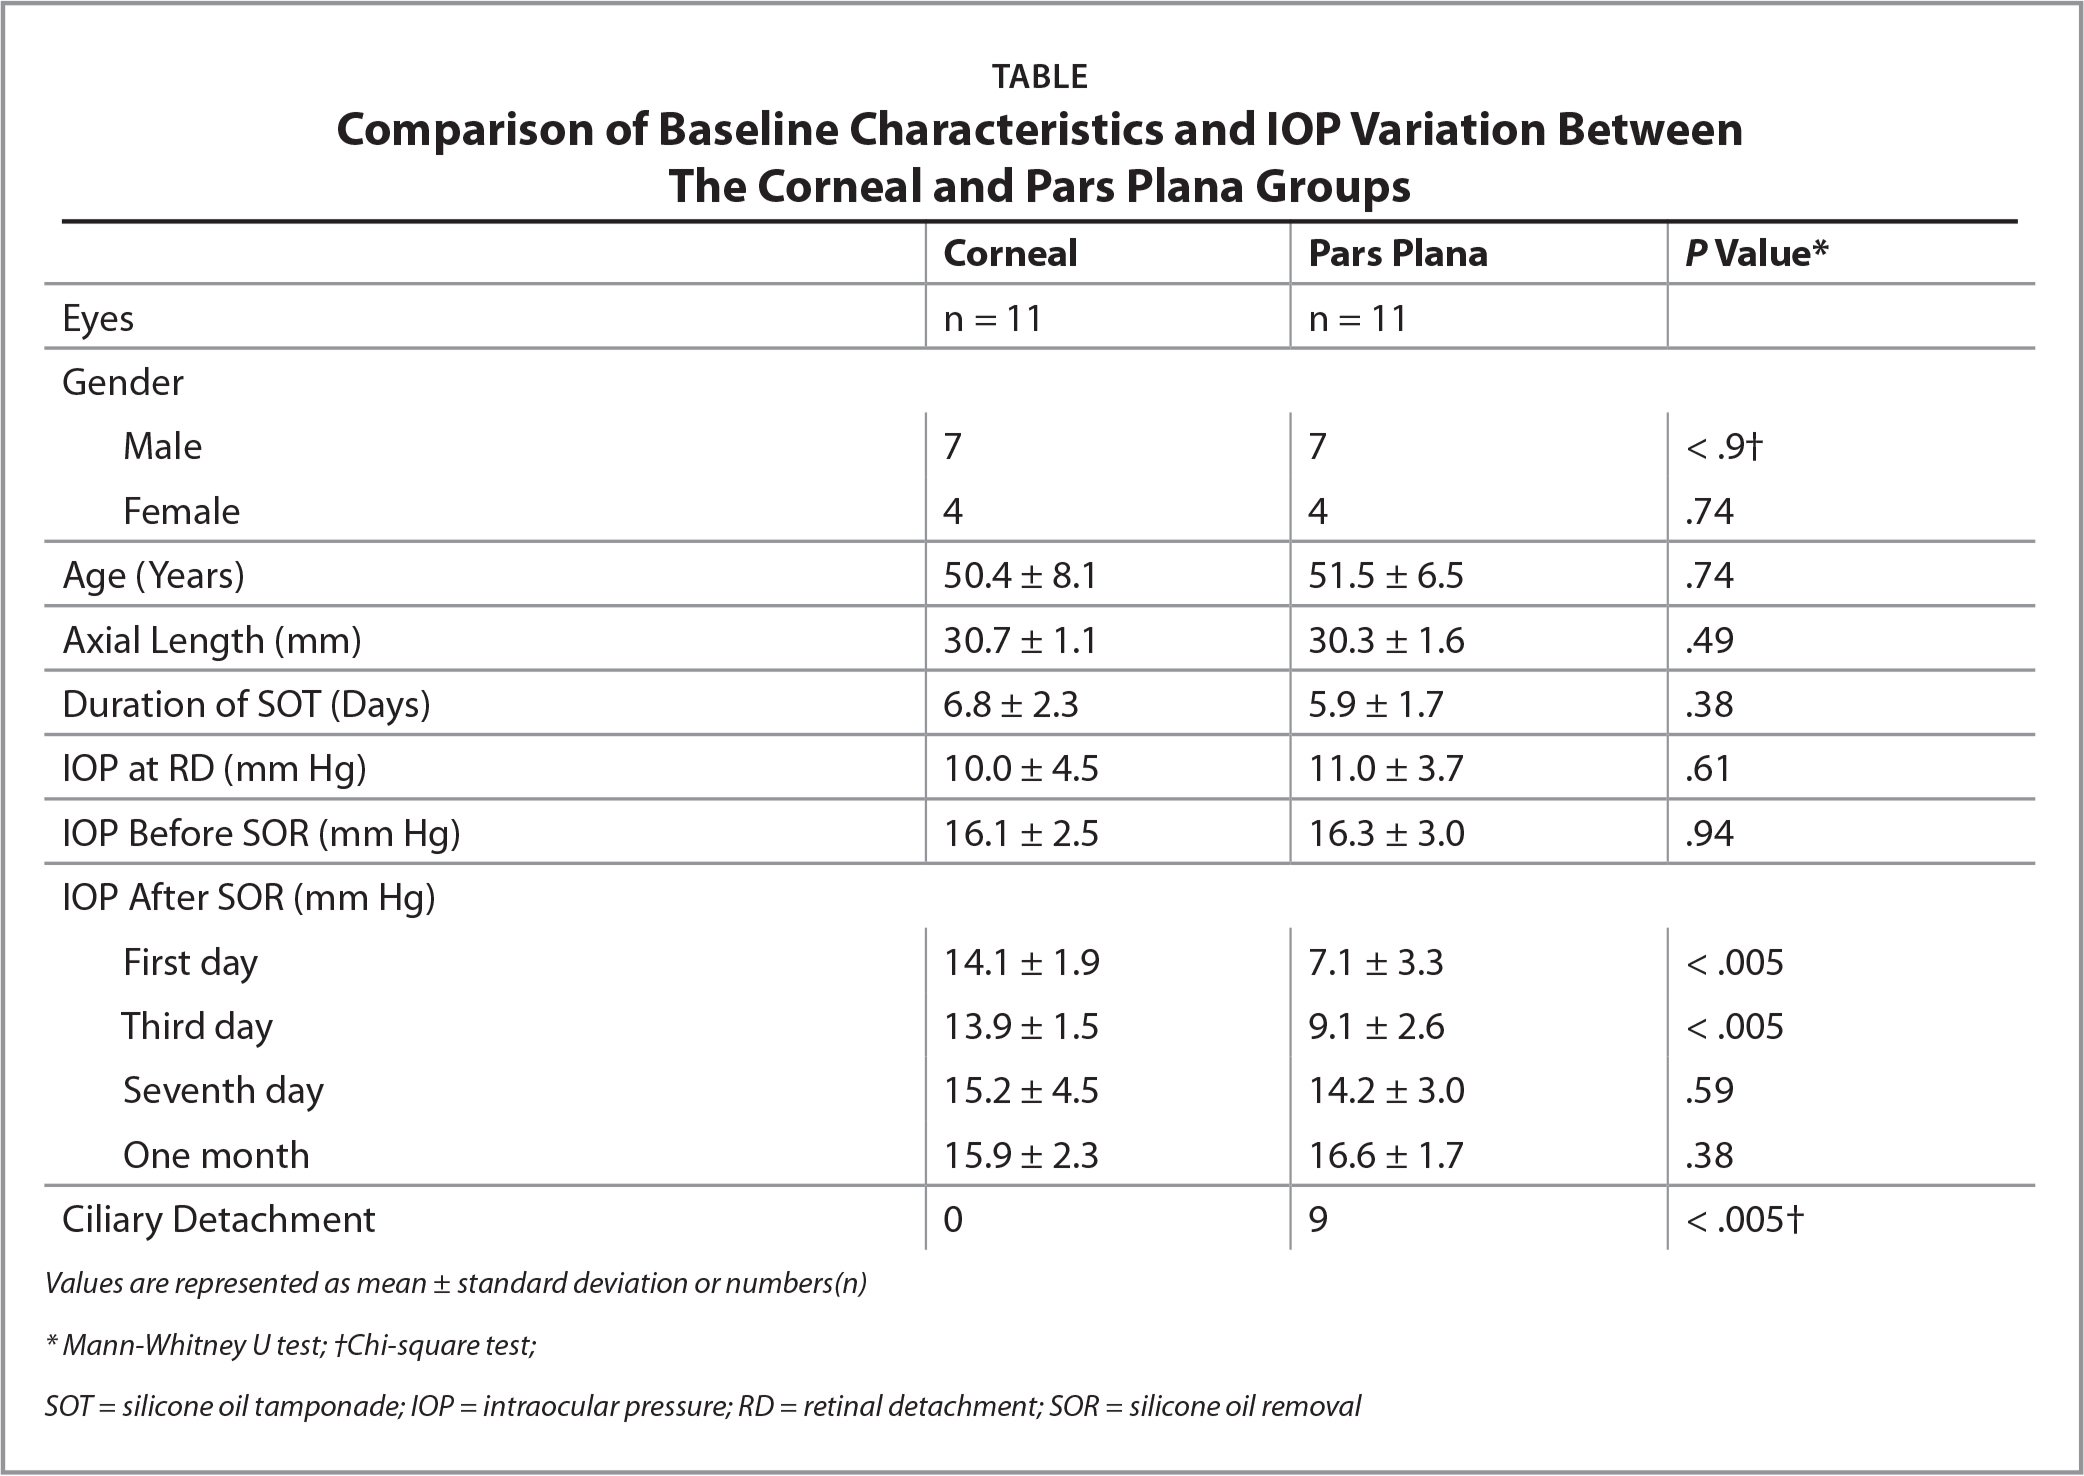 Comparison of Baseline Characteristics and IOP Variation BetweenThe Corneal and Pars Plana Groups